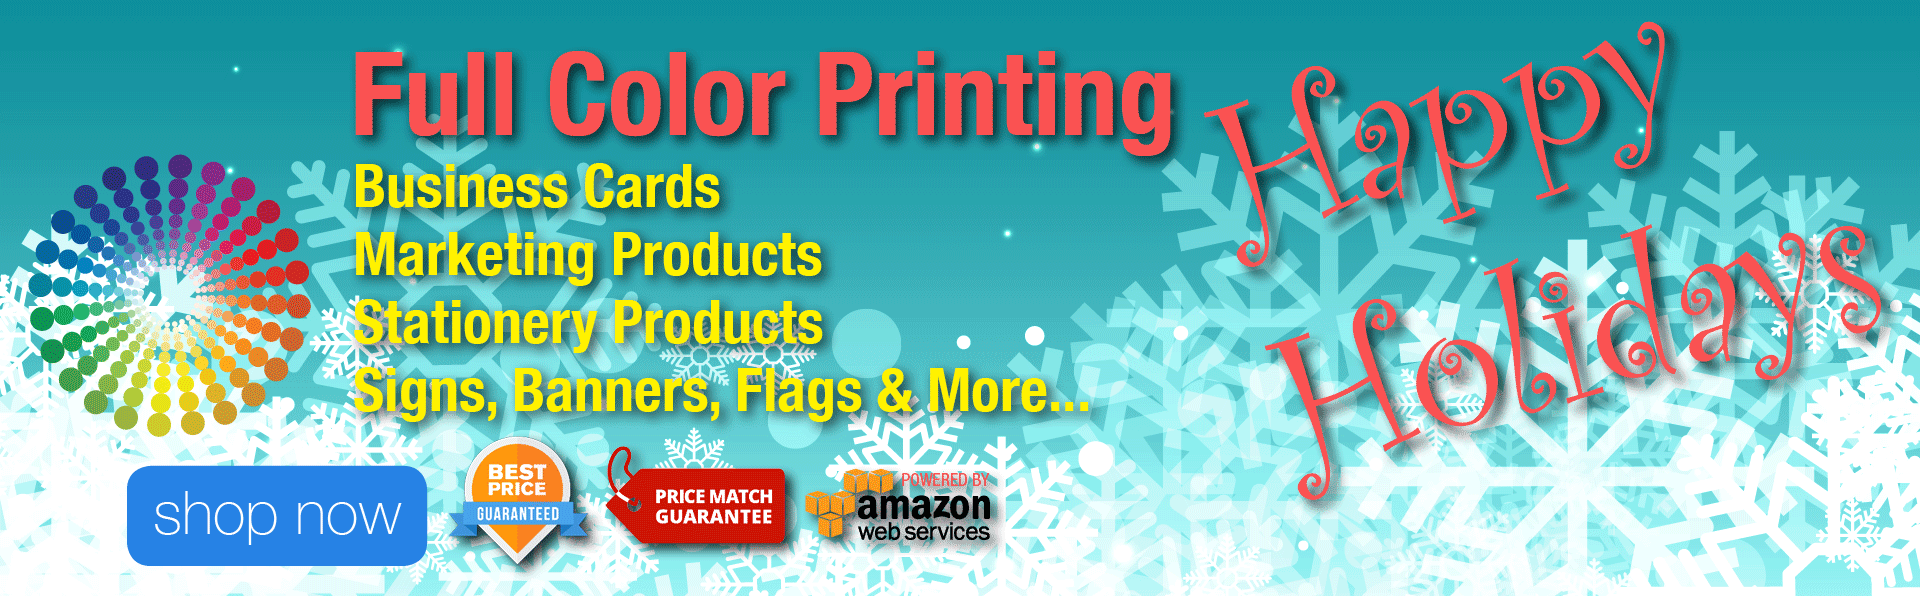 Full Color Printing - Happy Holidays